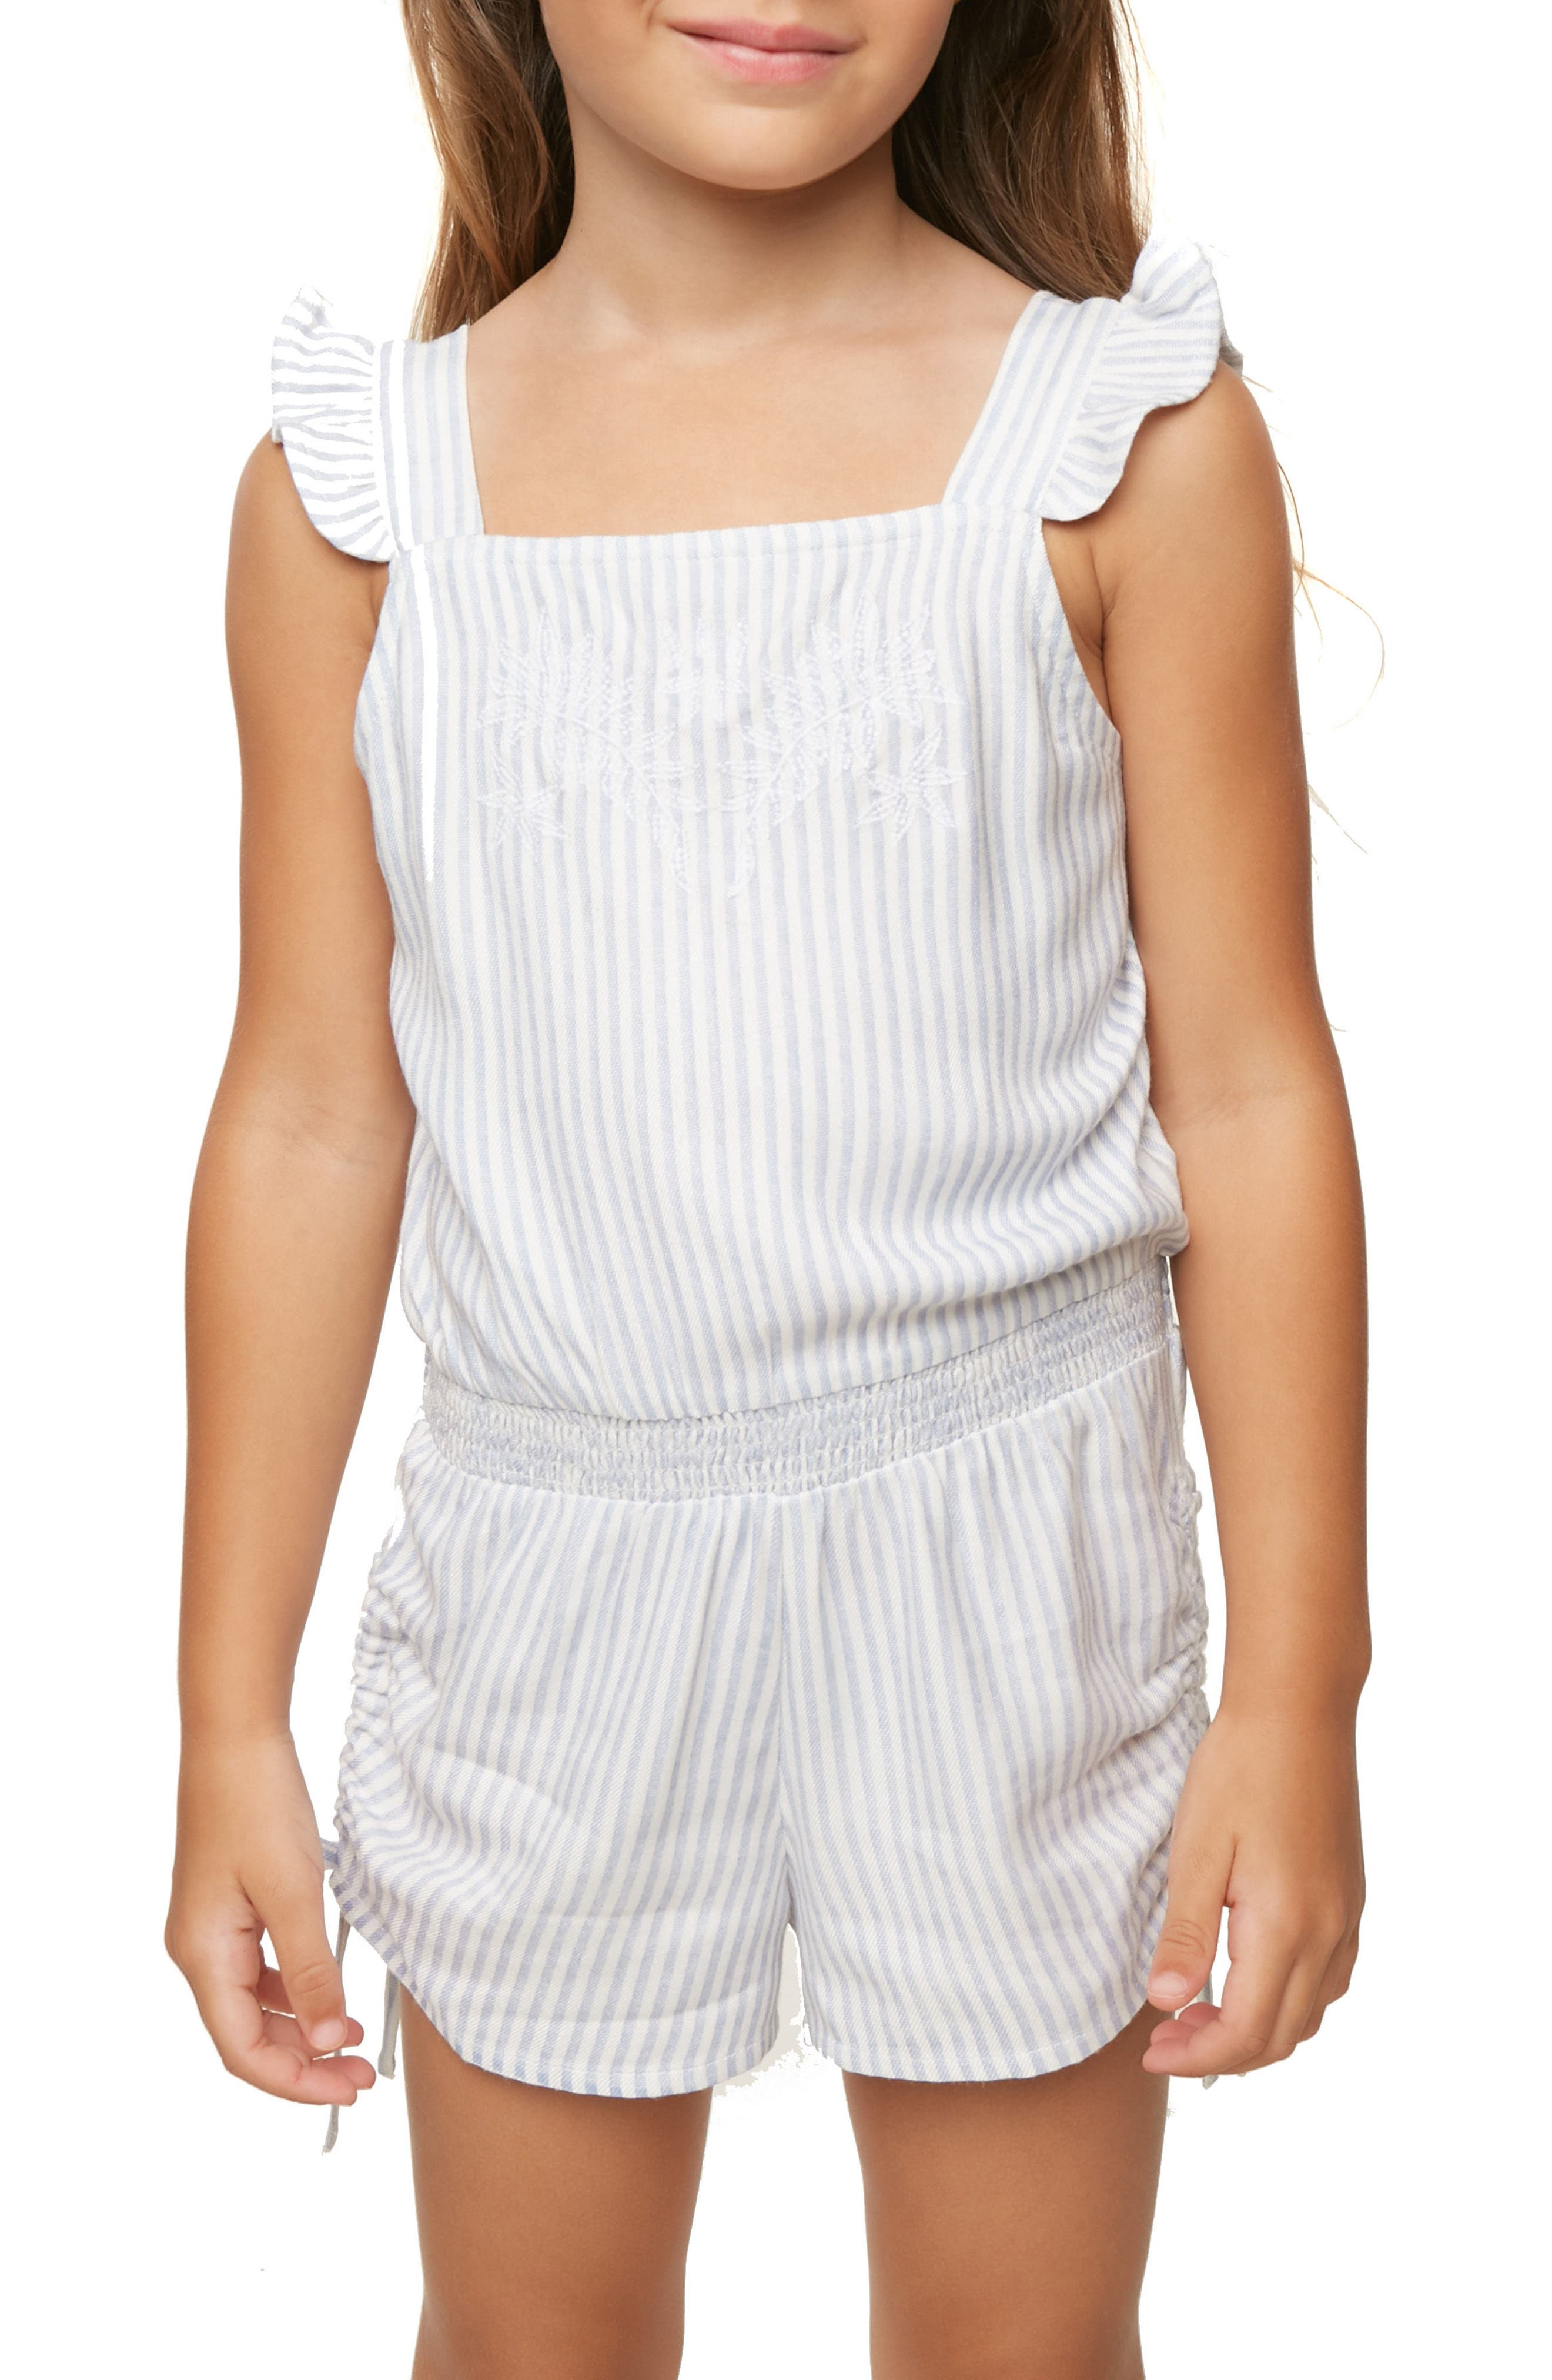 Lemonade Stripe Romper,                             Main thumbnail 1, color,                             Bleached Periwinkle